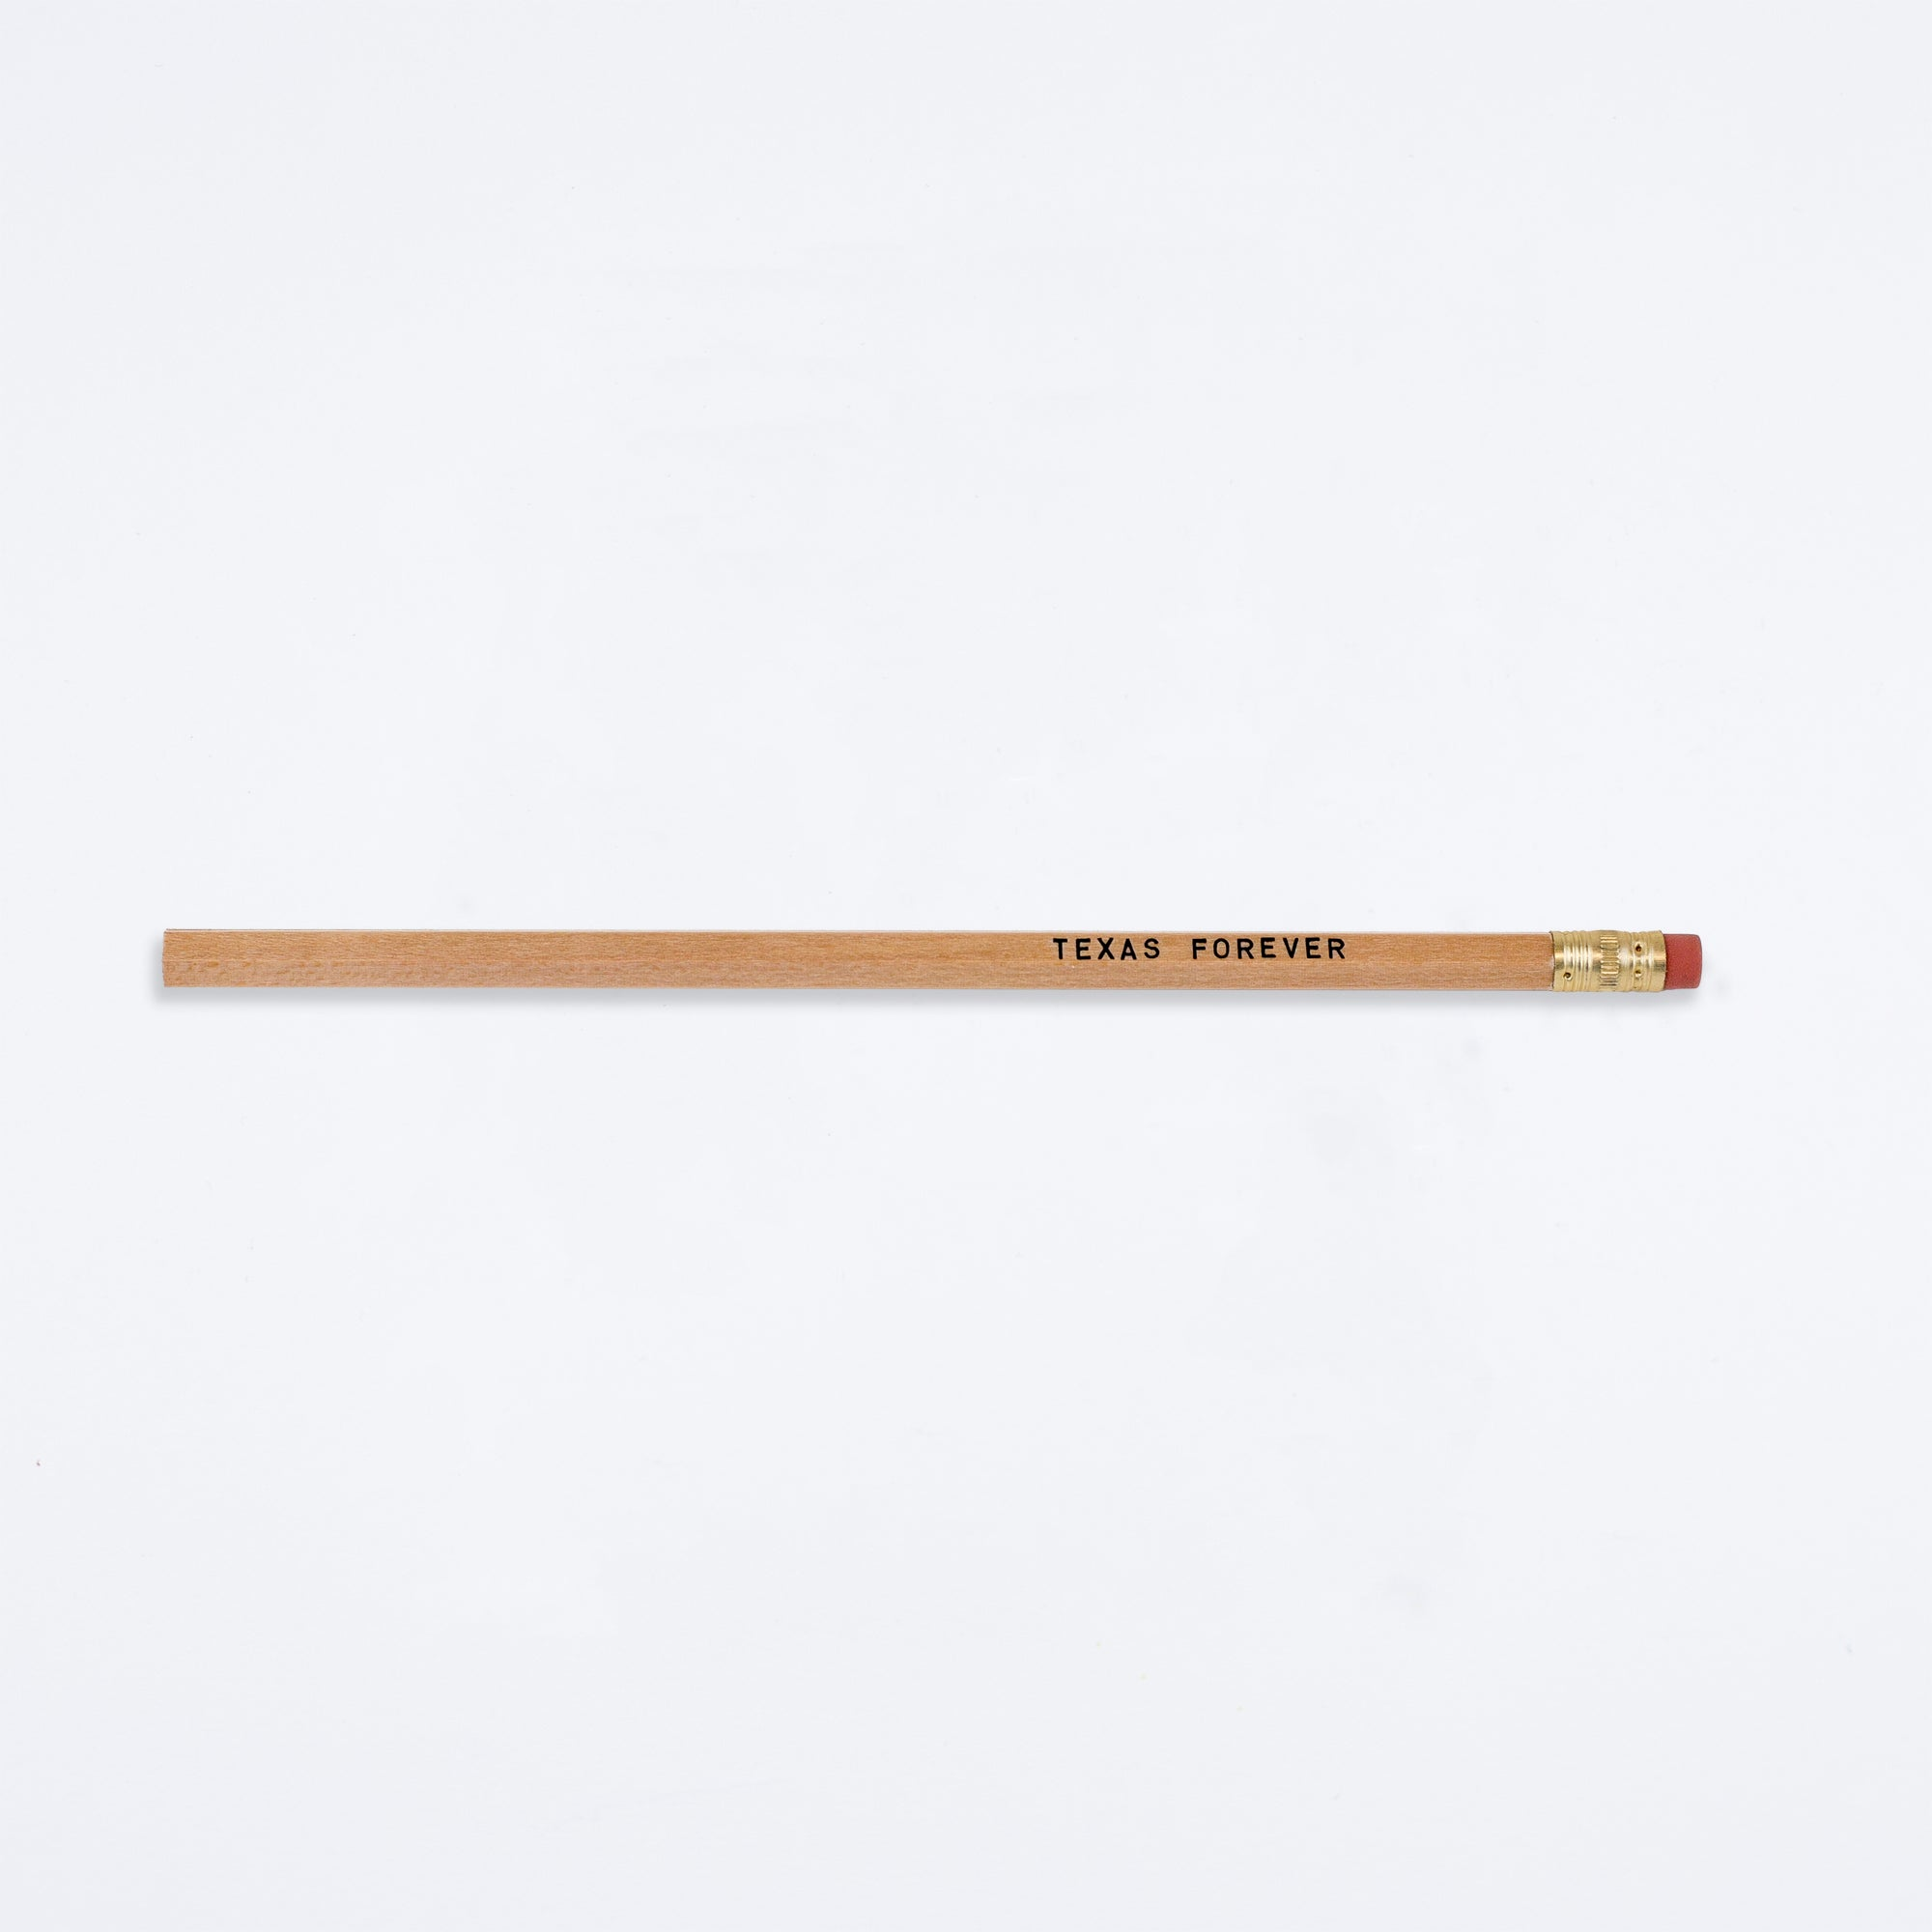 Texas Forever Pencil